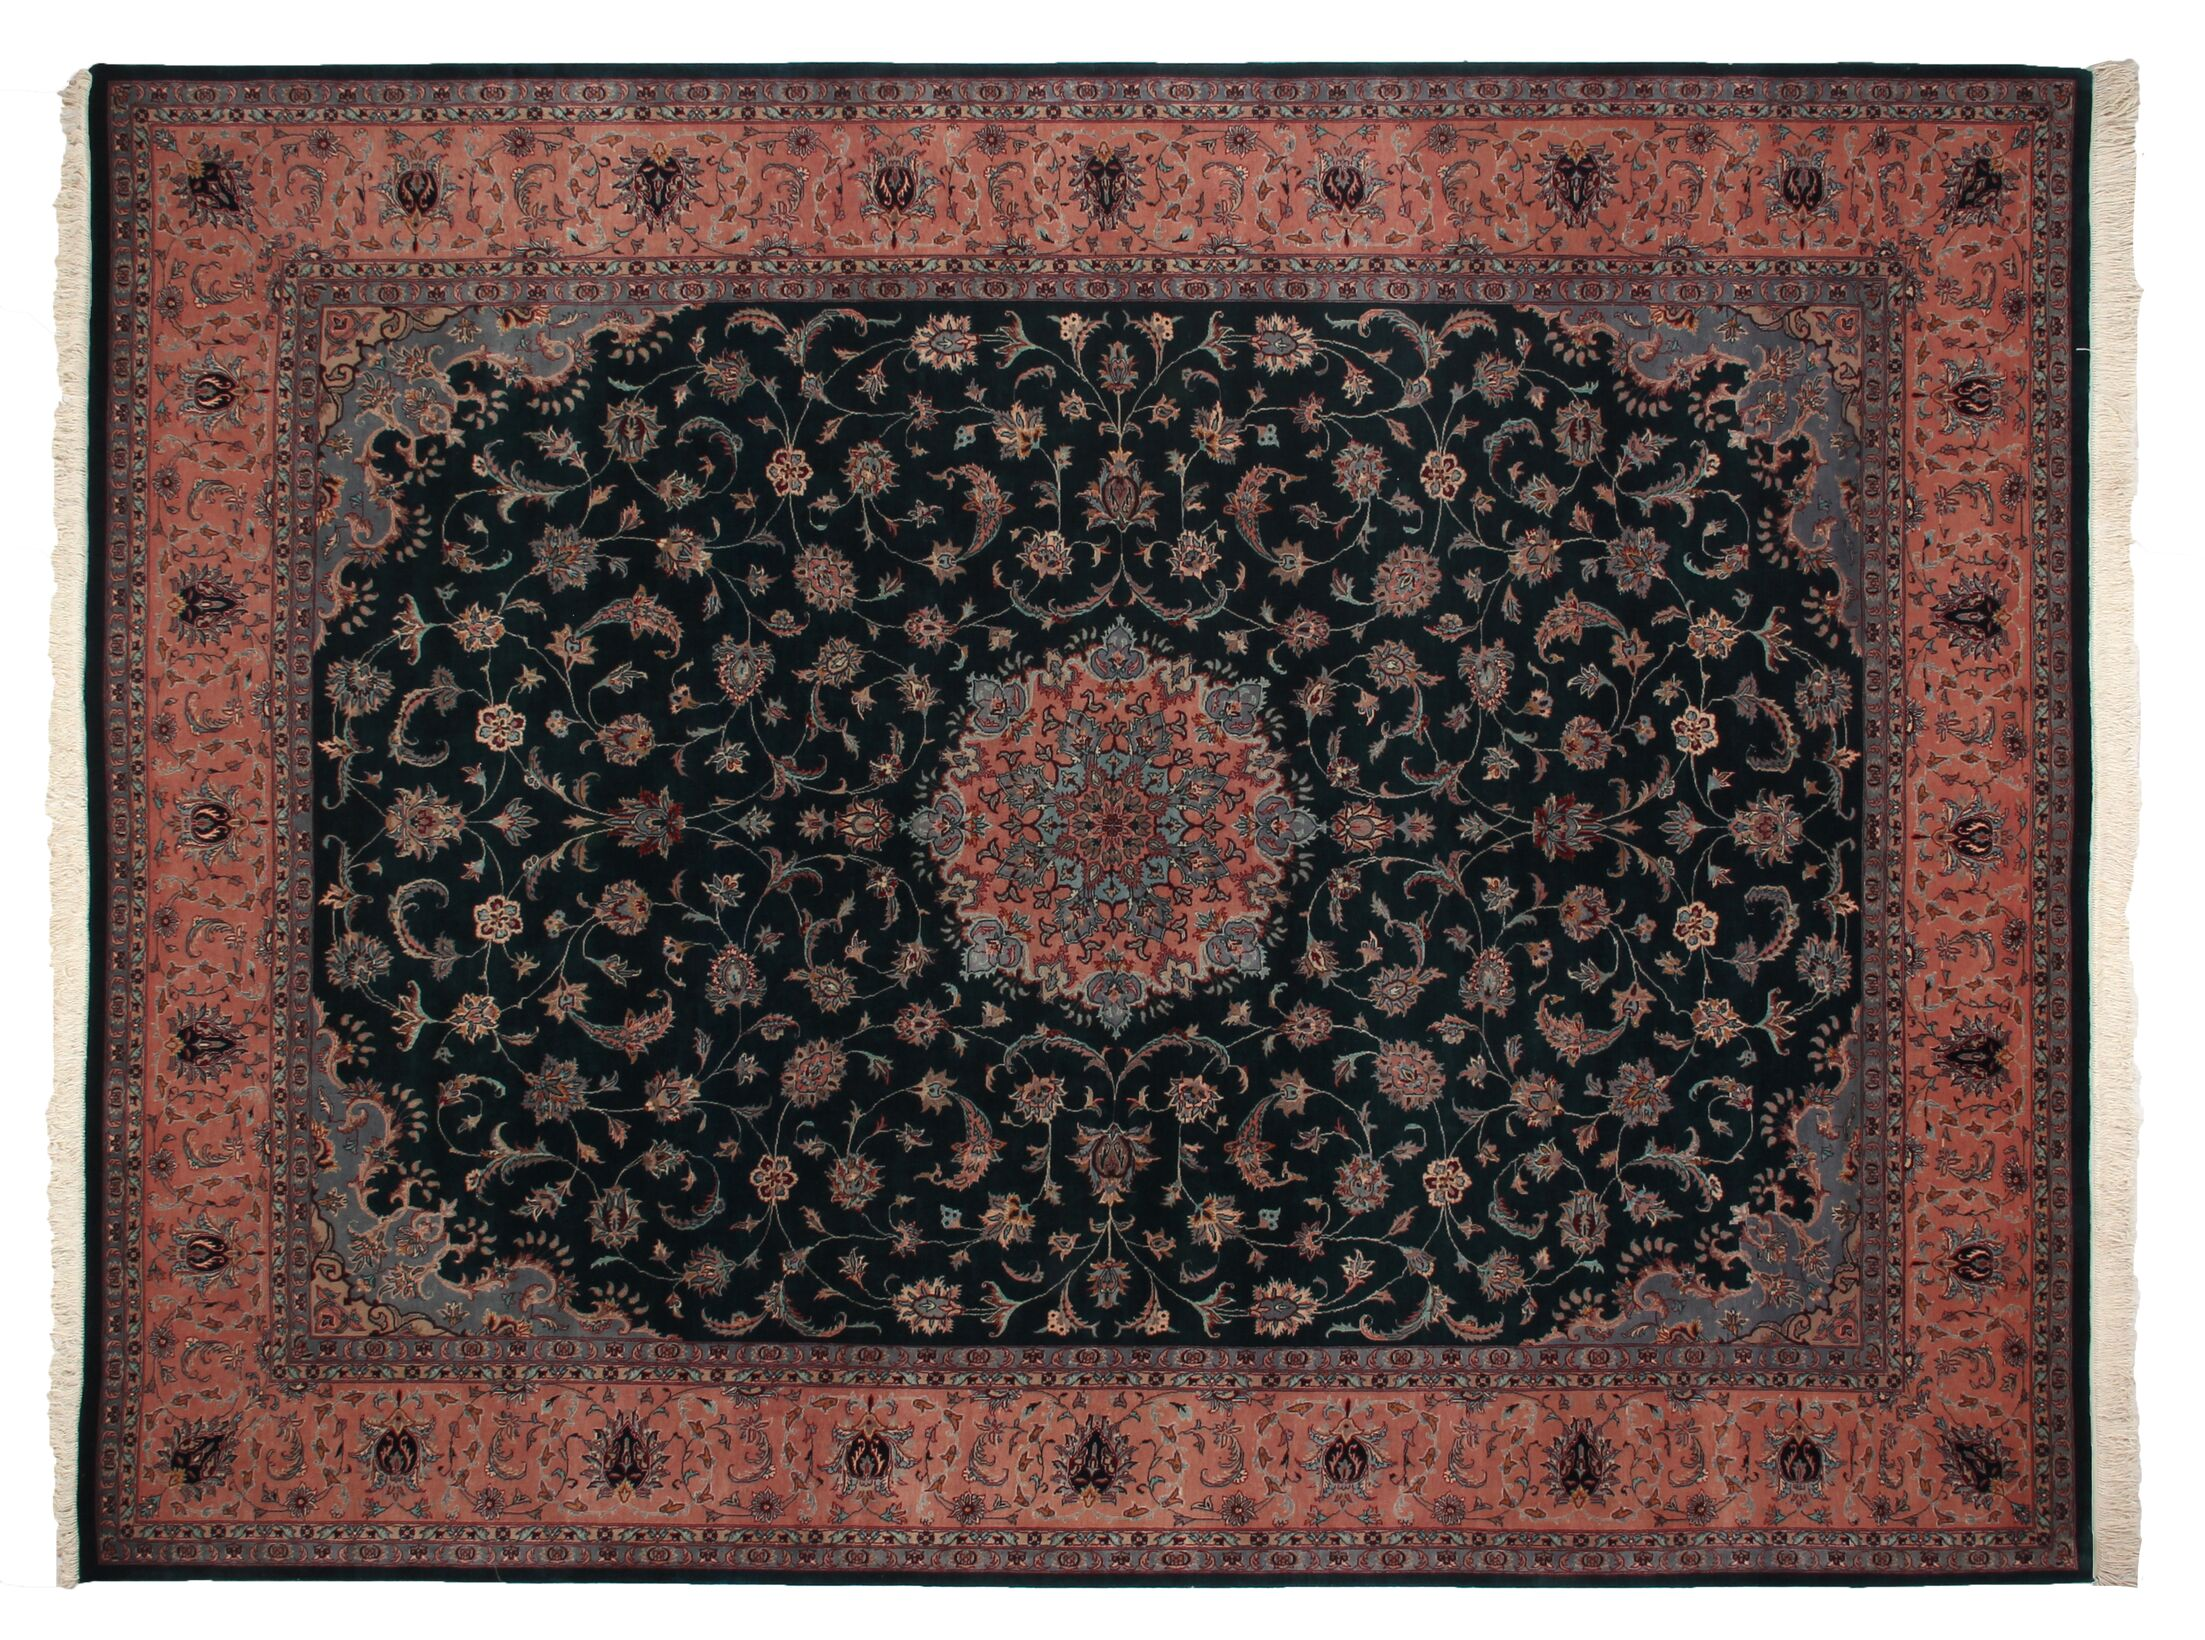 One-of-a-Kind Hand-Woven Wool Blue/Rust Area Rug